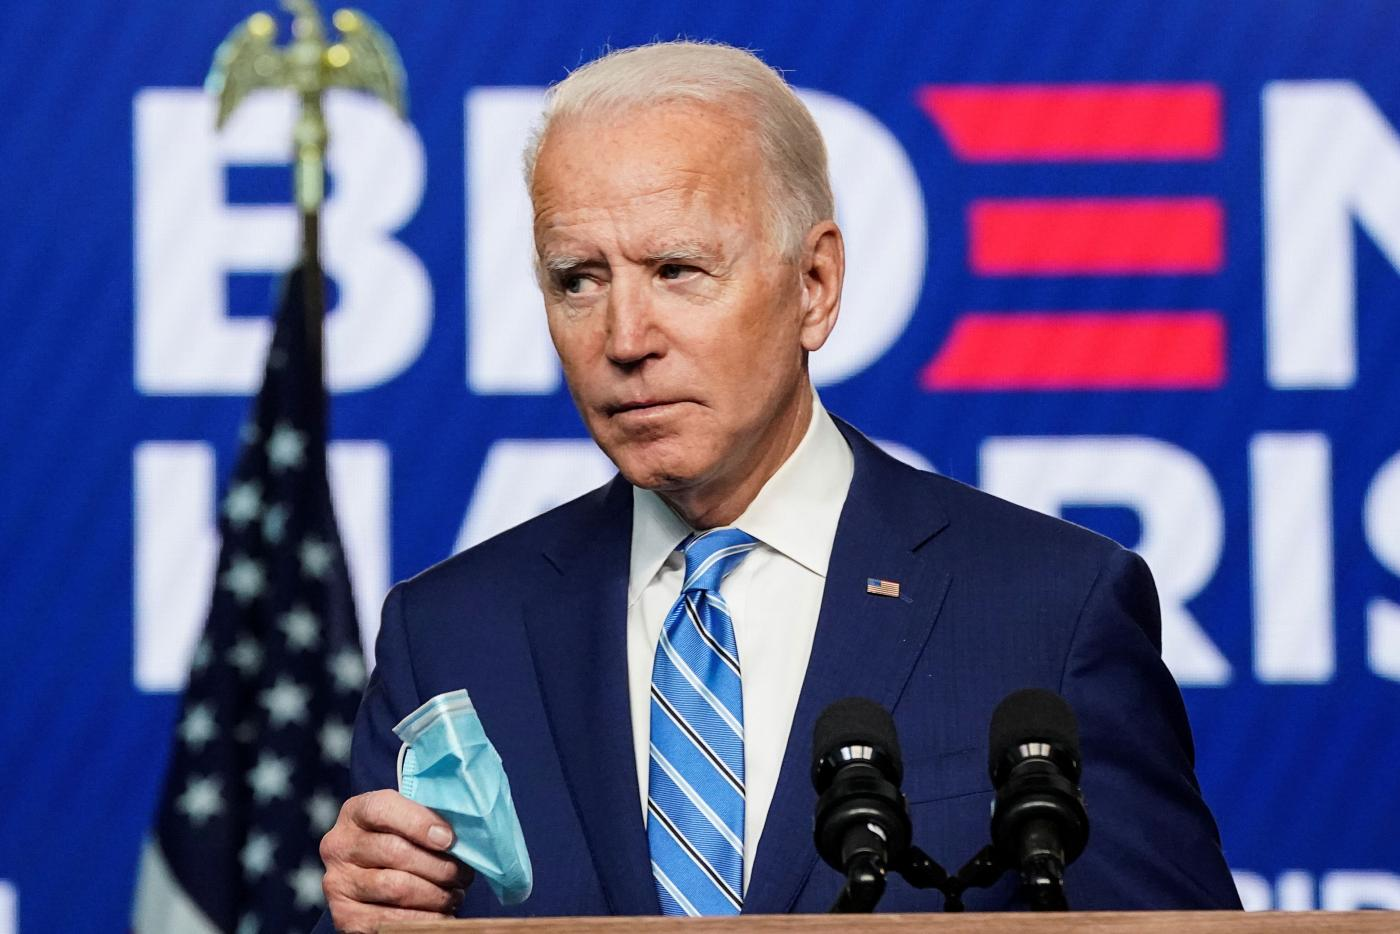 US elections 2020: Joe Biden says he's 'winning enough states' to secure White House | Middle East Eye